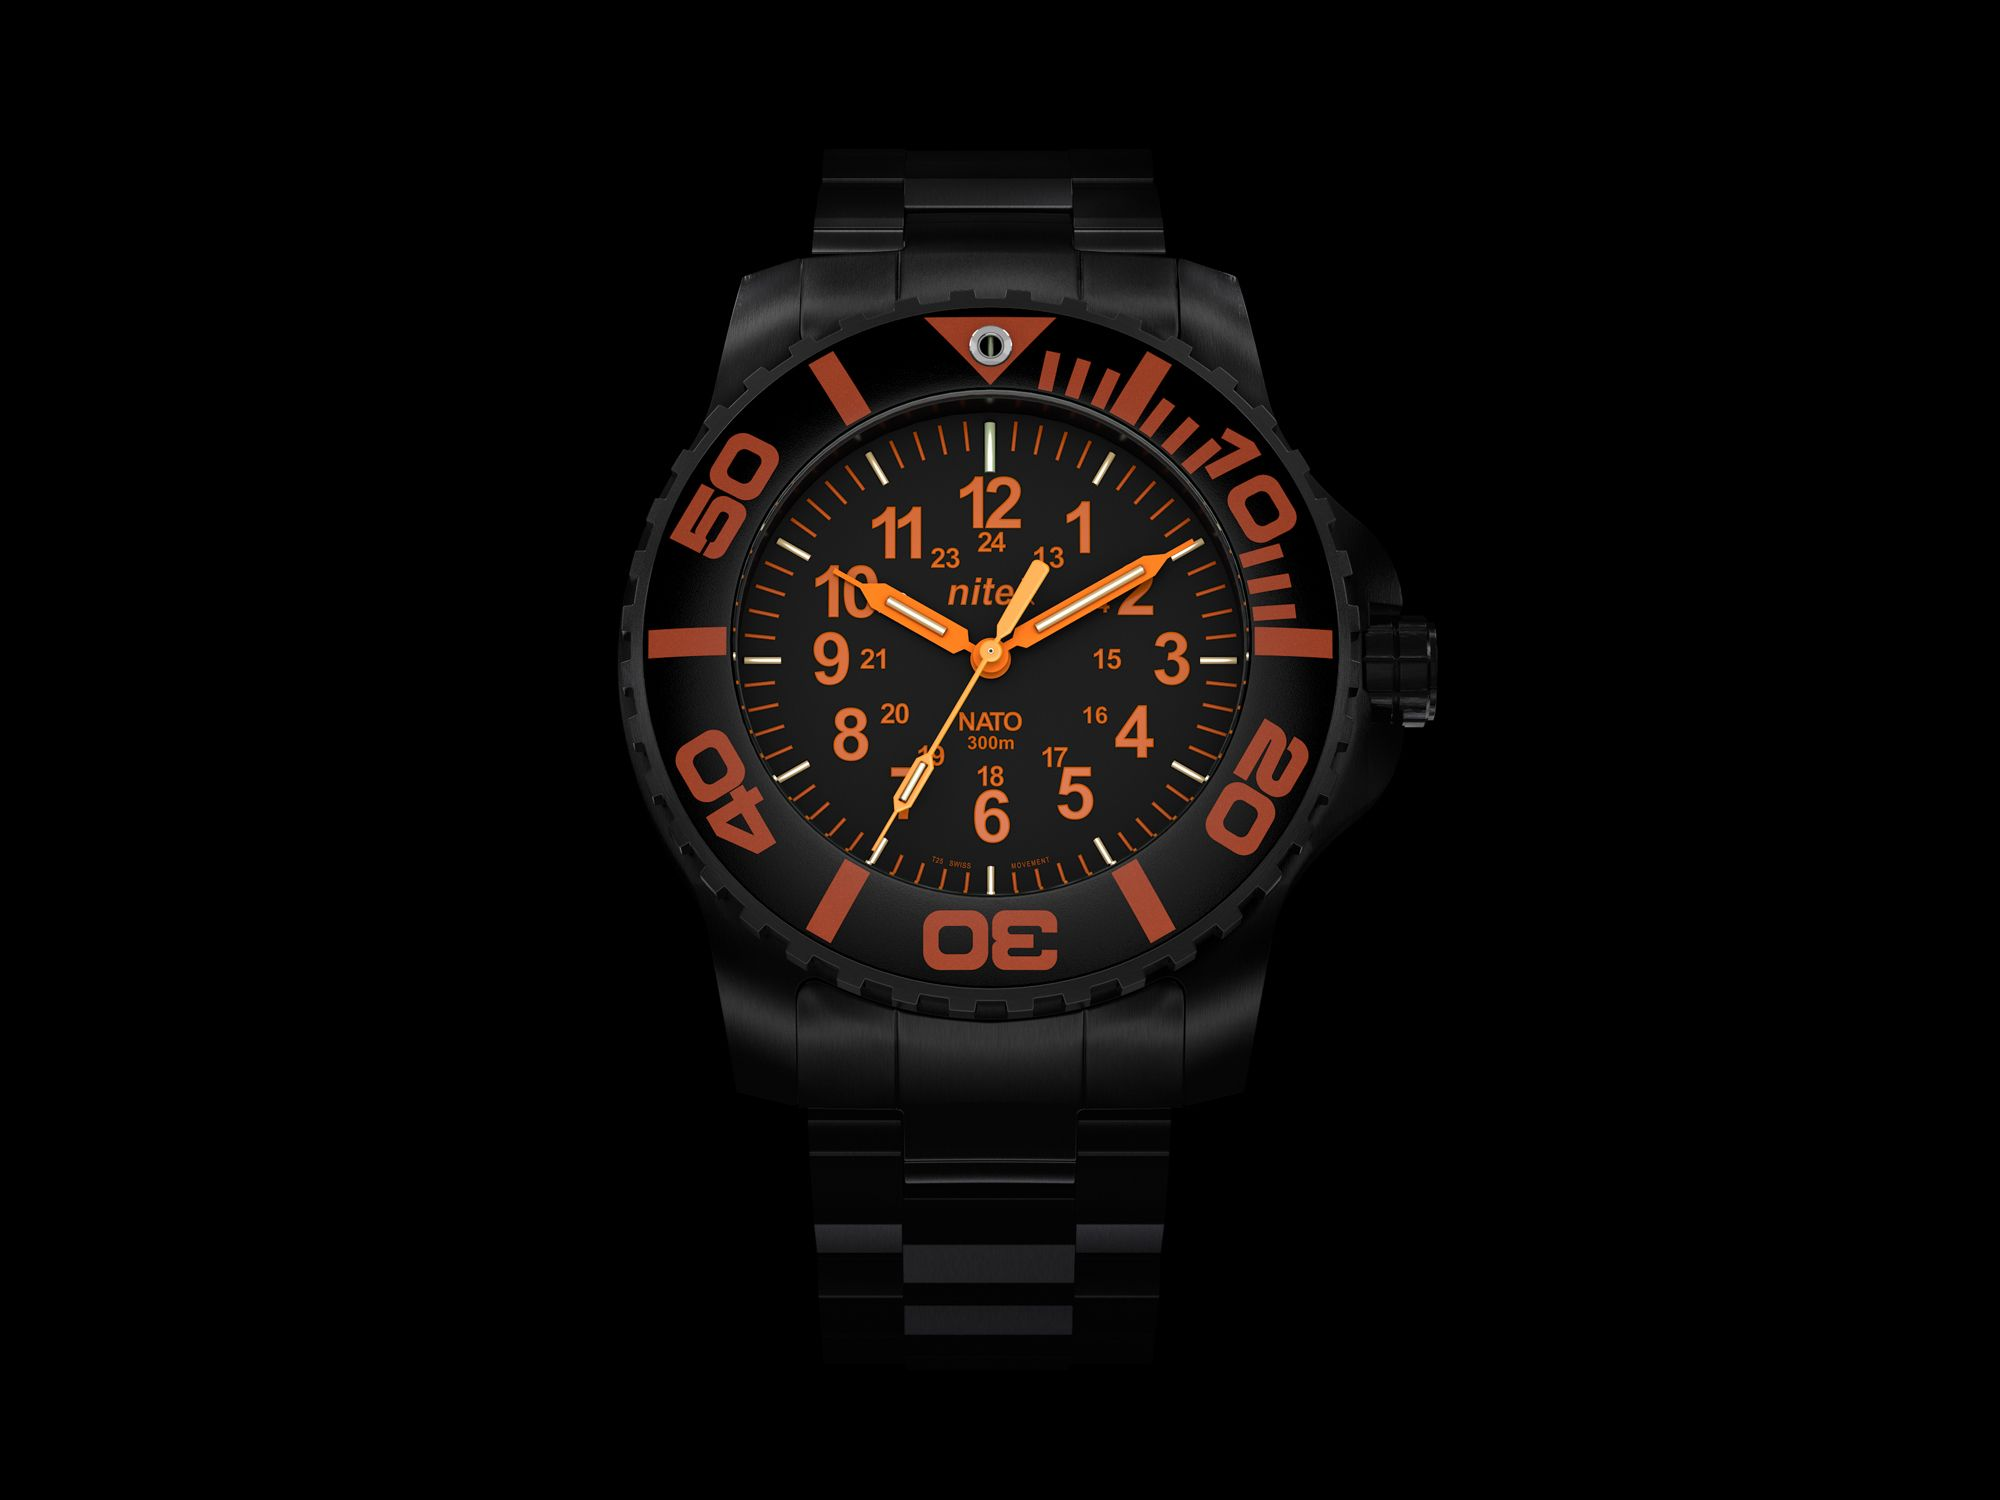 fashion relogio quartz watch watches analog waterproof products male gifts men digital ohsen military illuminated sports clock dive hot